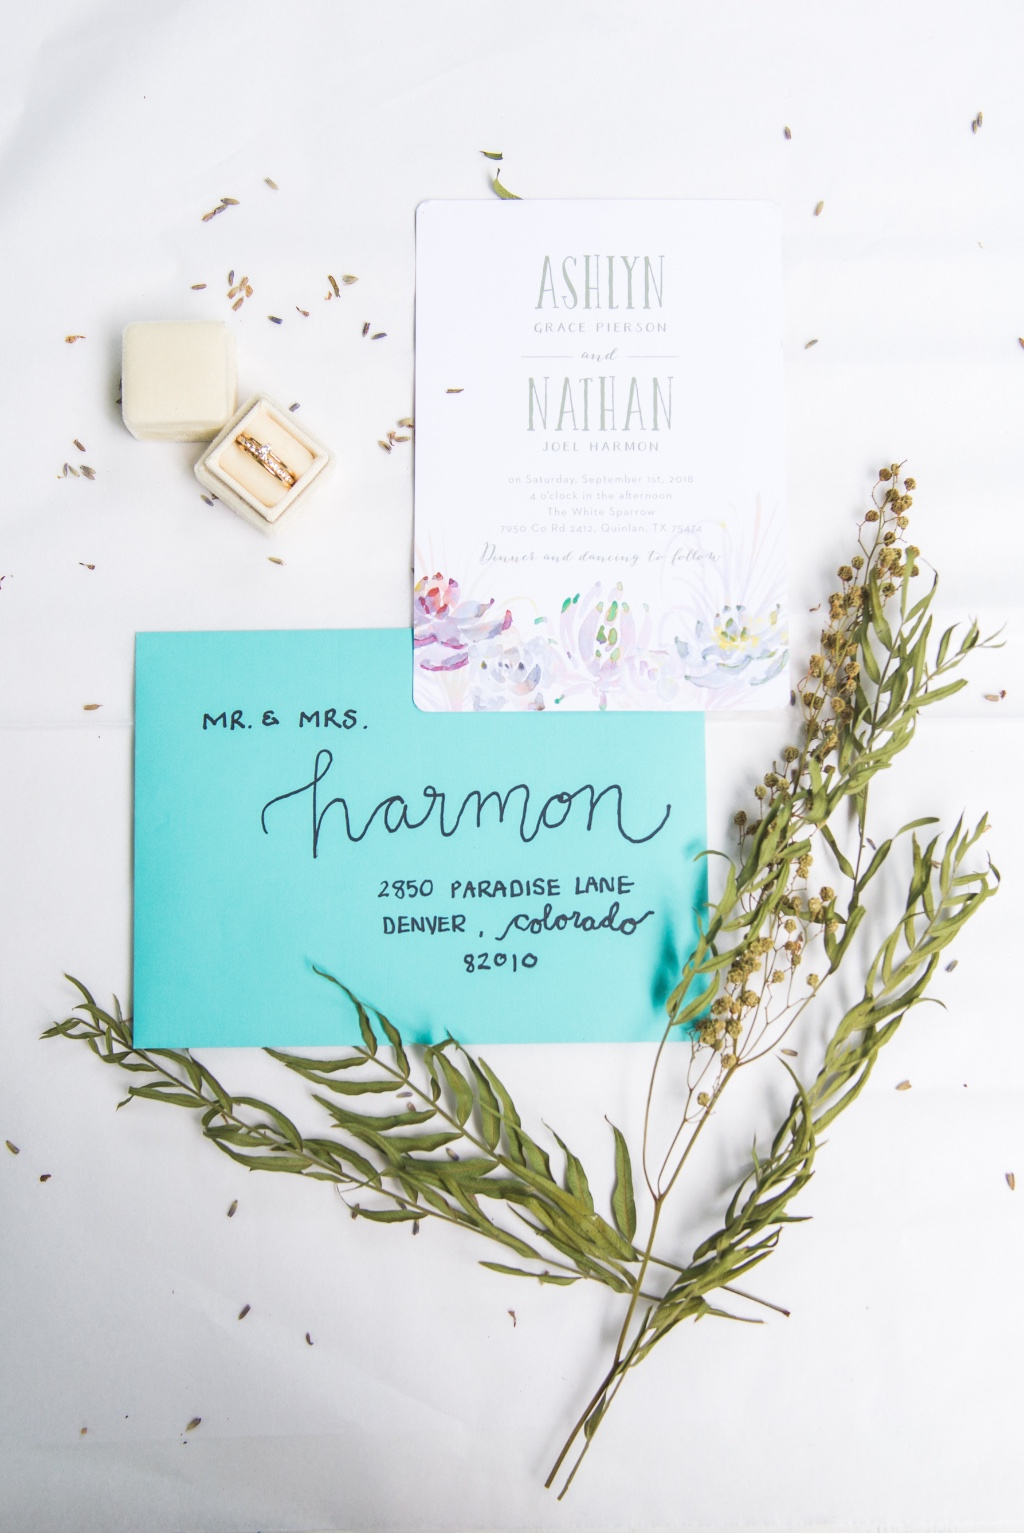 Top off your colorful custom look with a brightly colored envelope and hand-written calligraphy detail. Super cute!